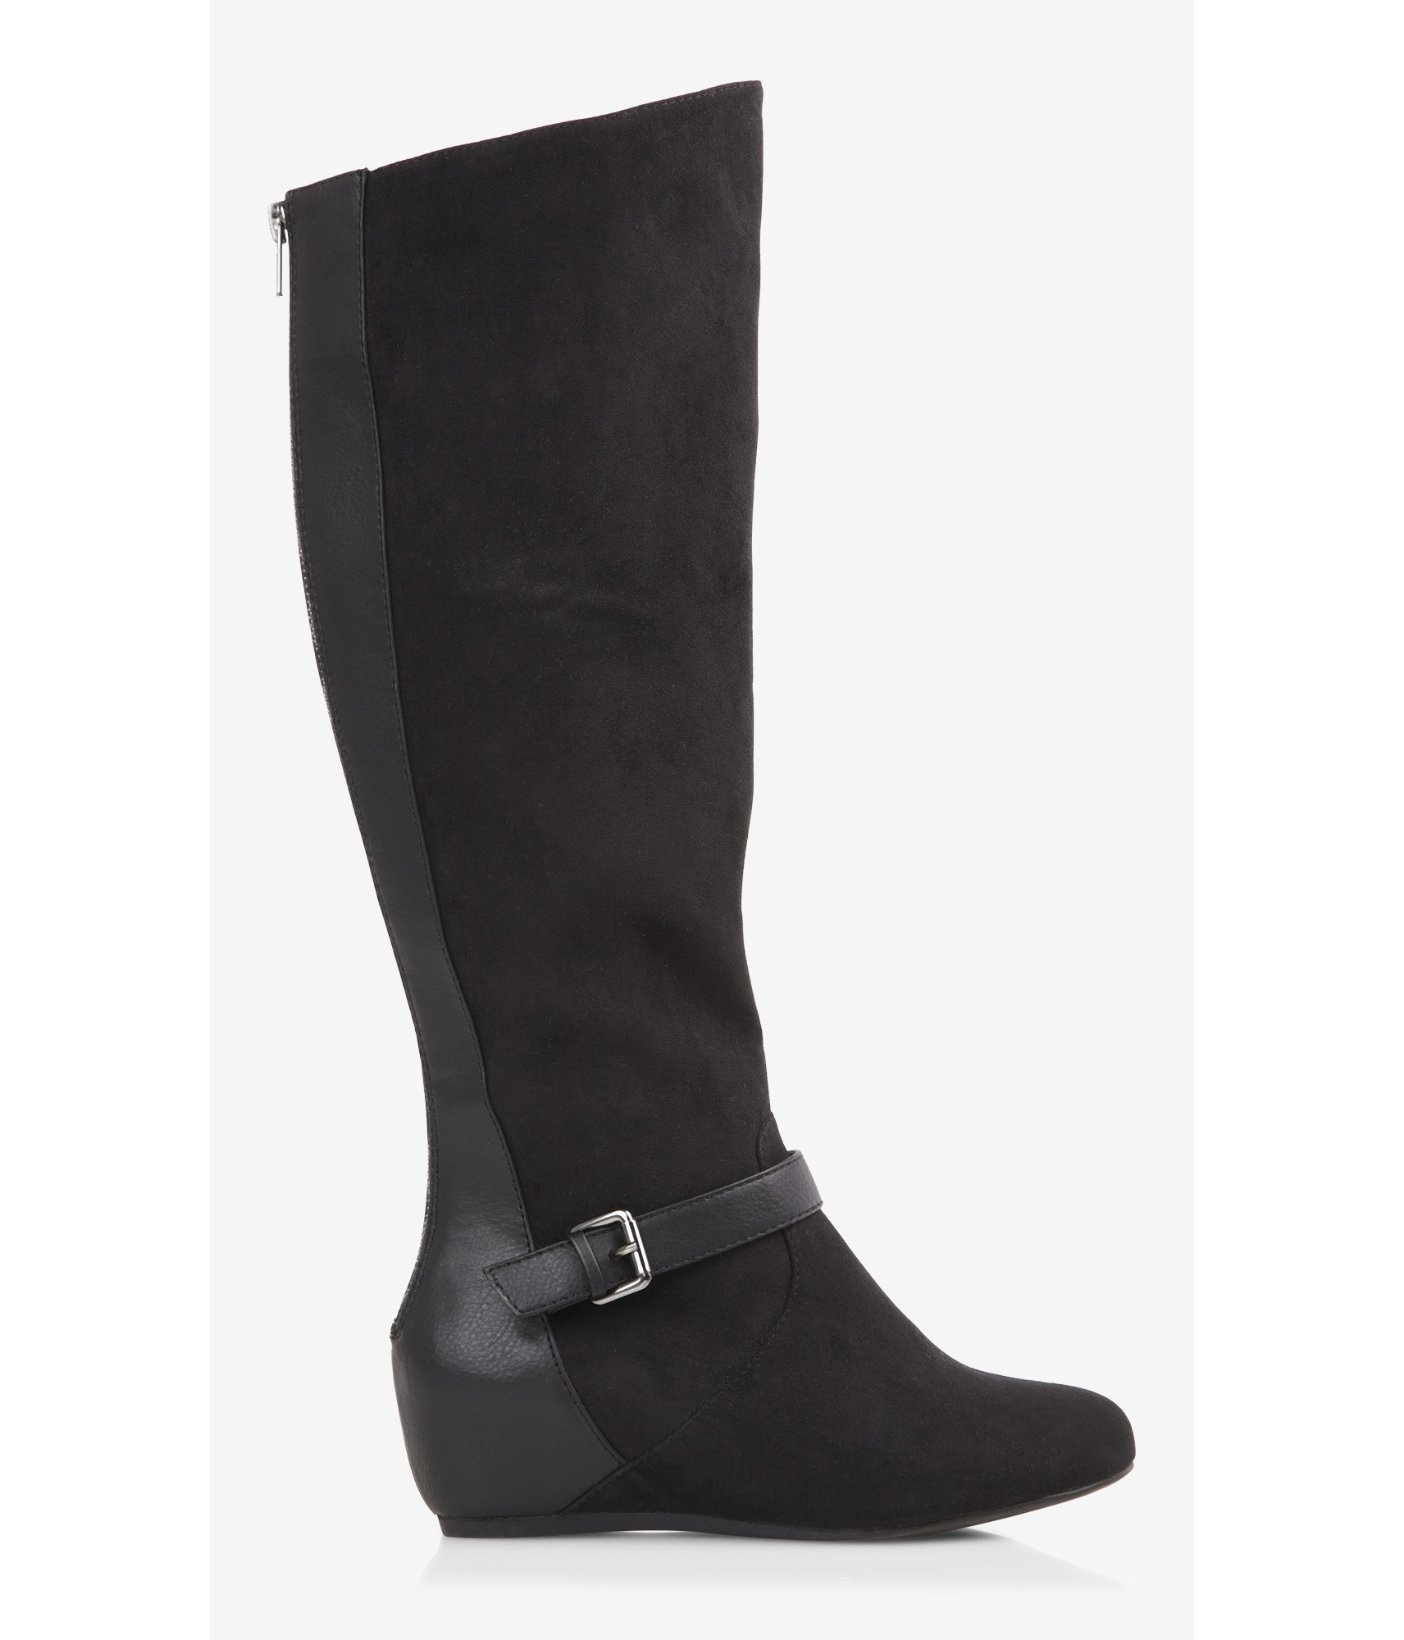 express wide calf buckled wedge boot in black lyst